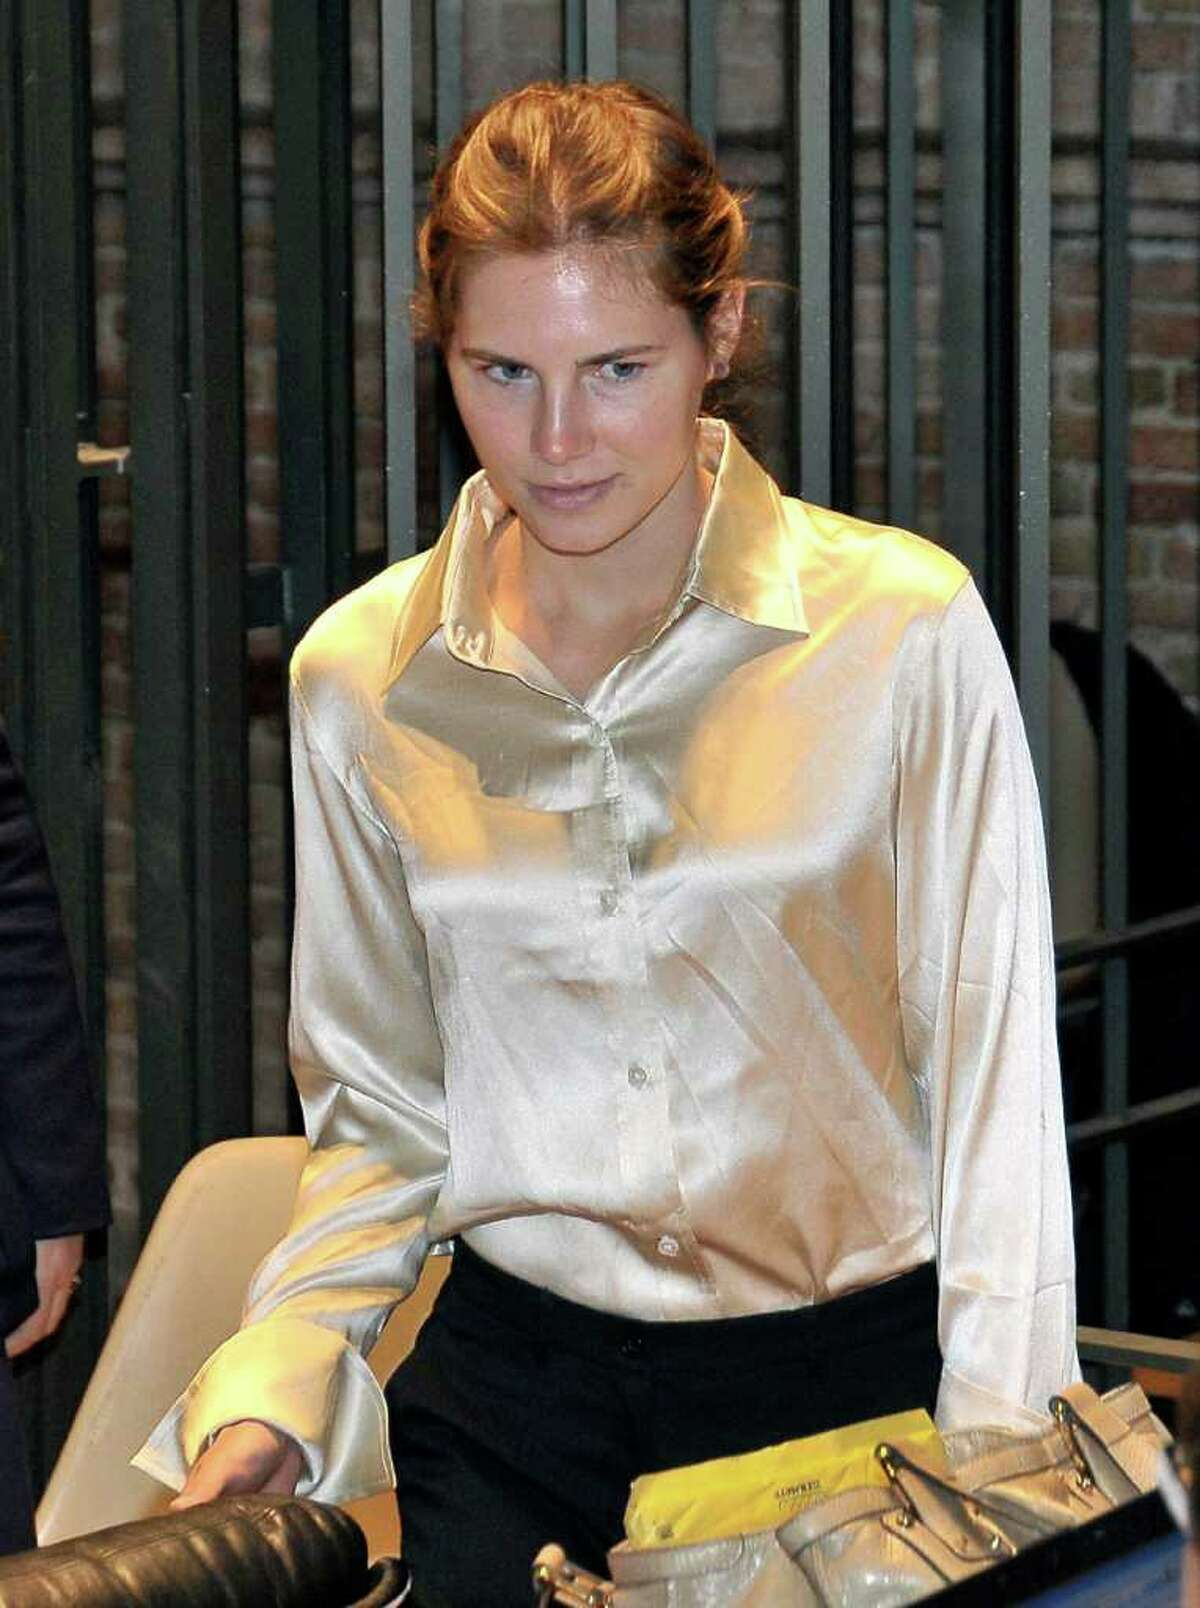 Amanda Knox arrives at the Perugia court, Italy, Saturday, May 21, 2011. A tearful Amanda Knox said Saturday that being in prison is